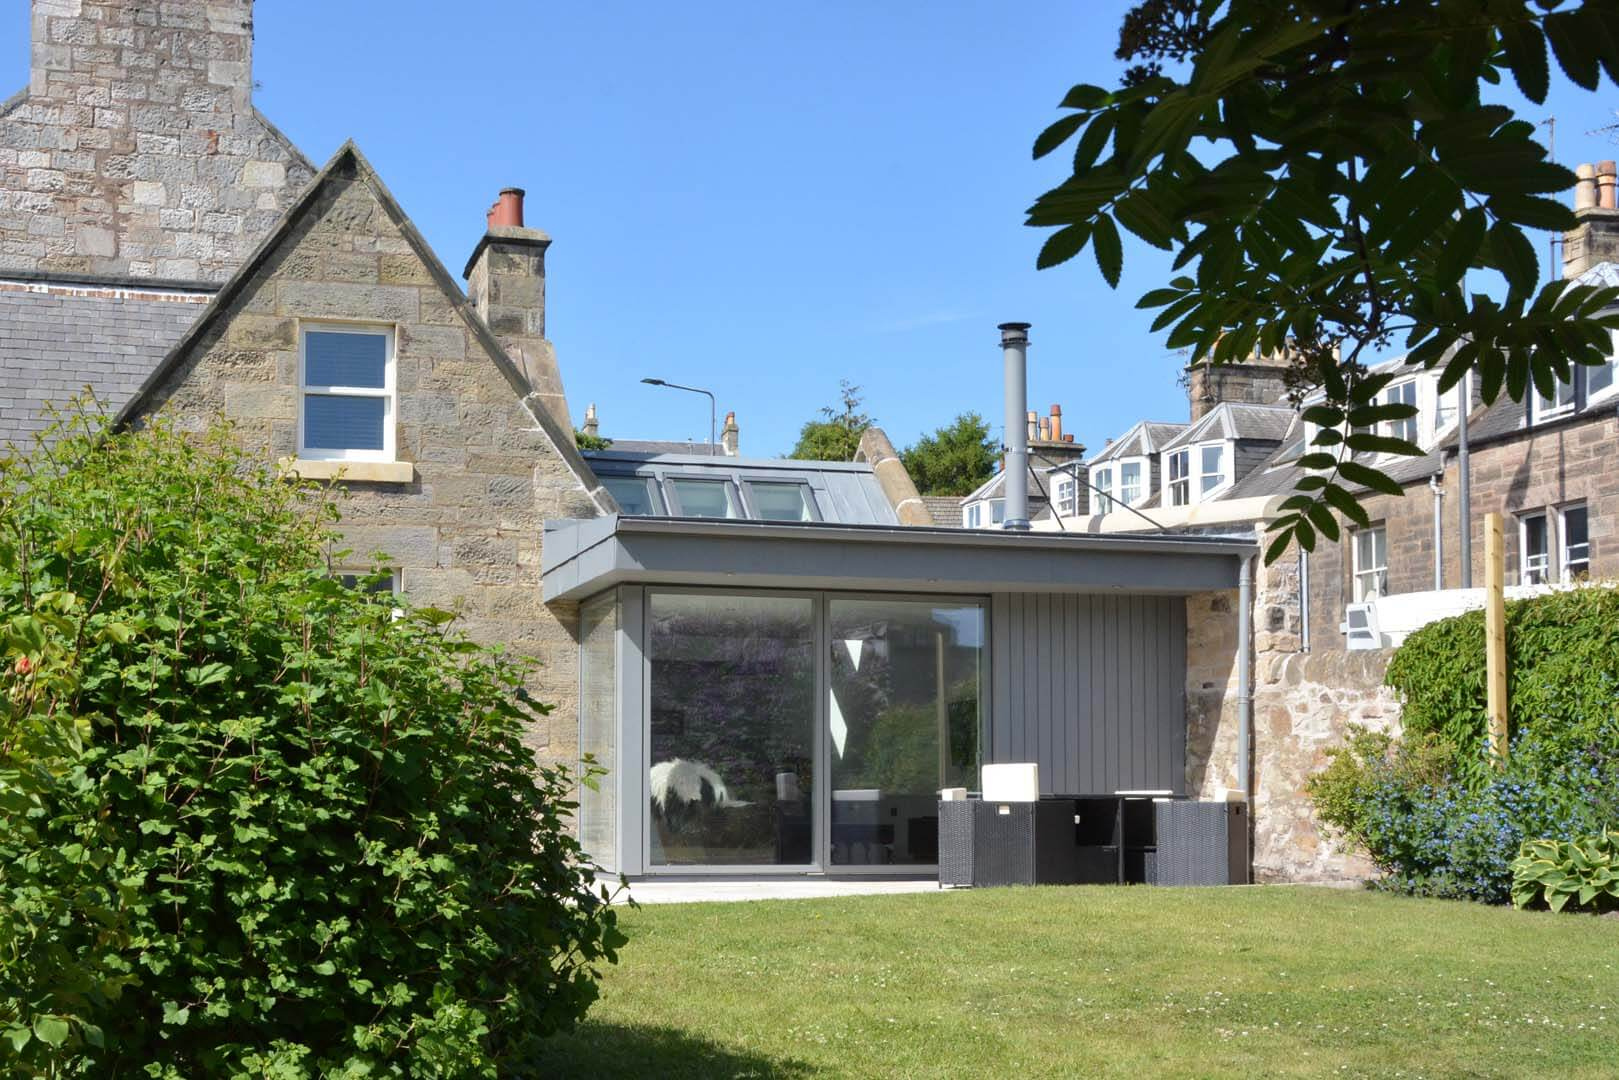 Refurb and Extension Traditional Cottage Side View from Garden